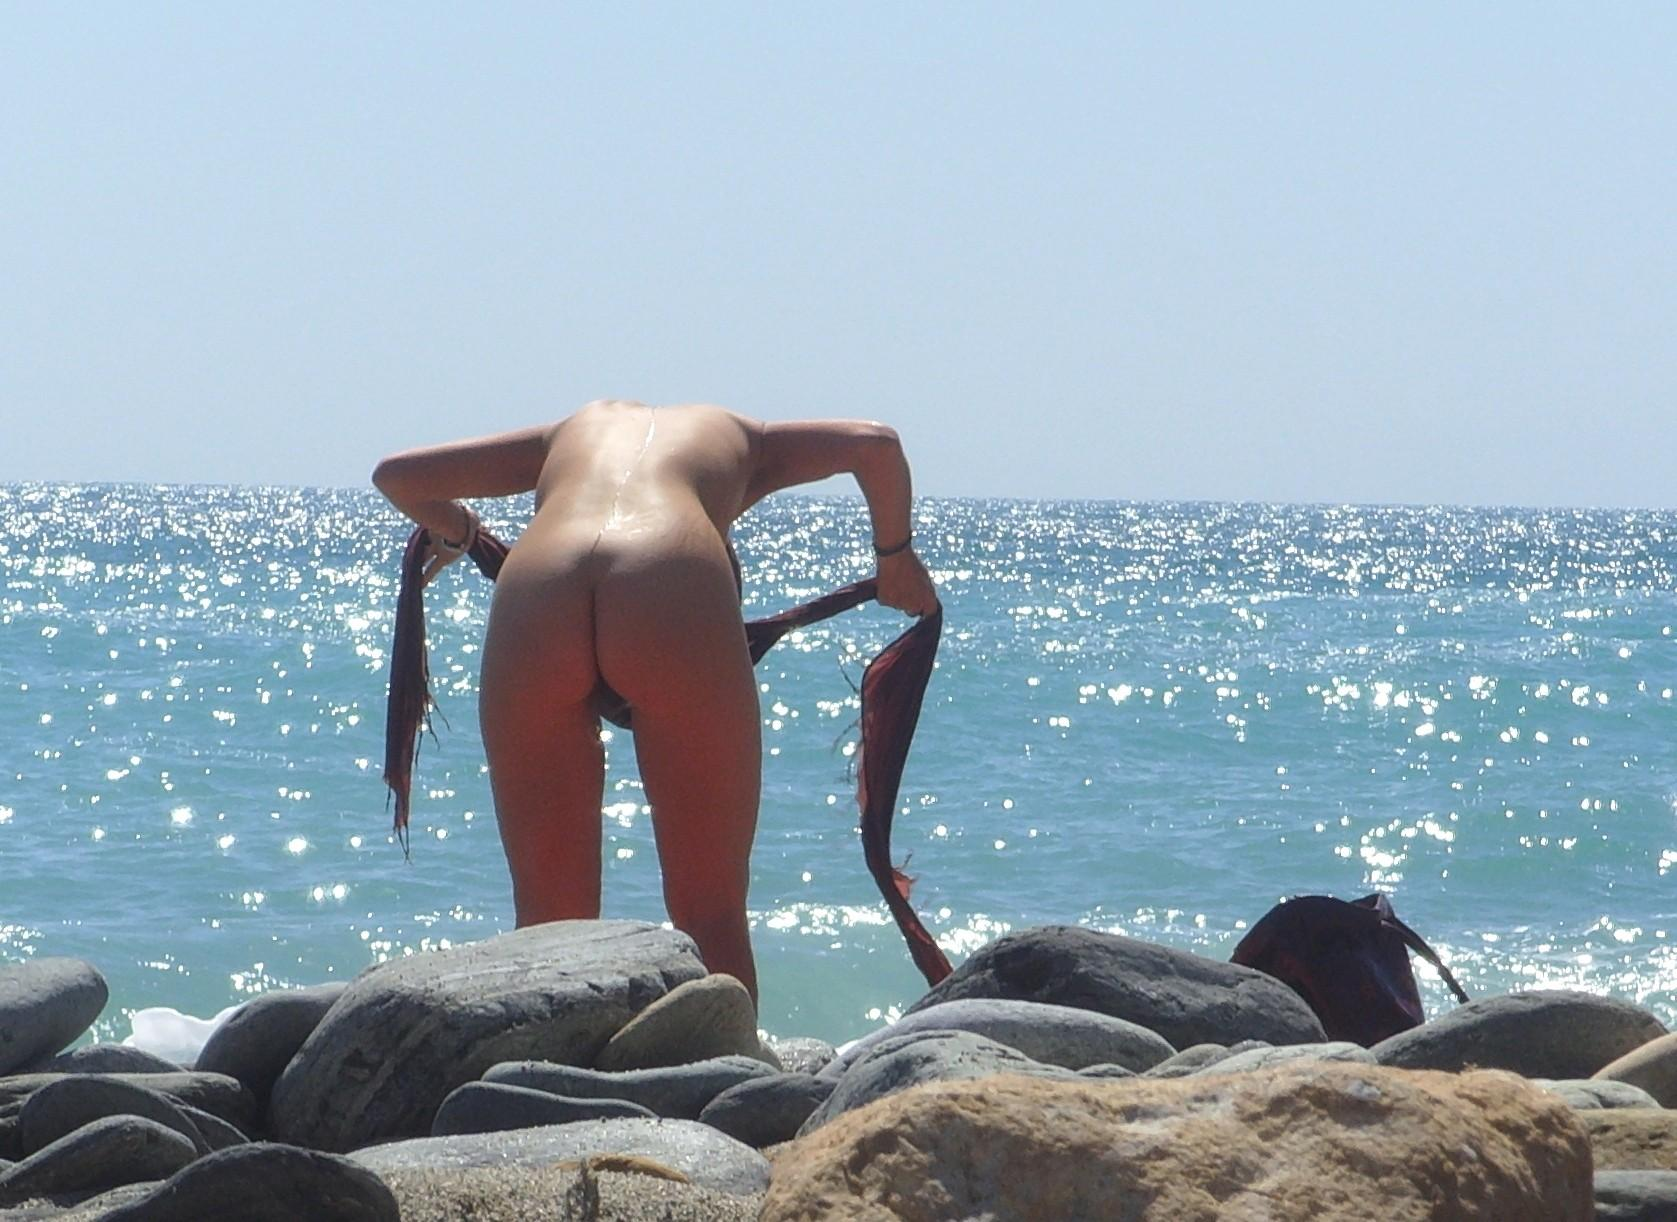 Amazing view with blue ocean and nude babe